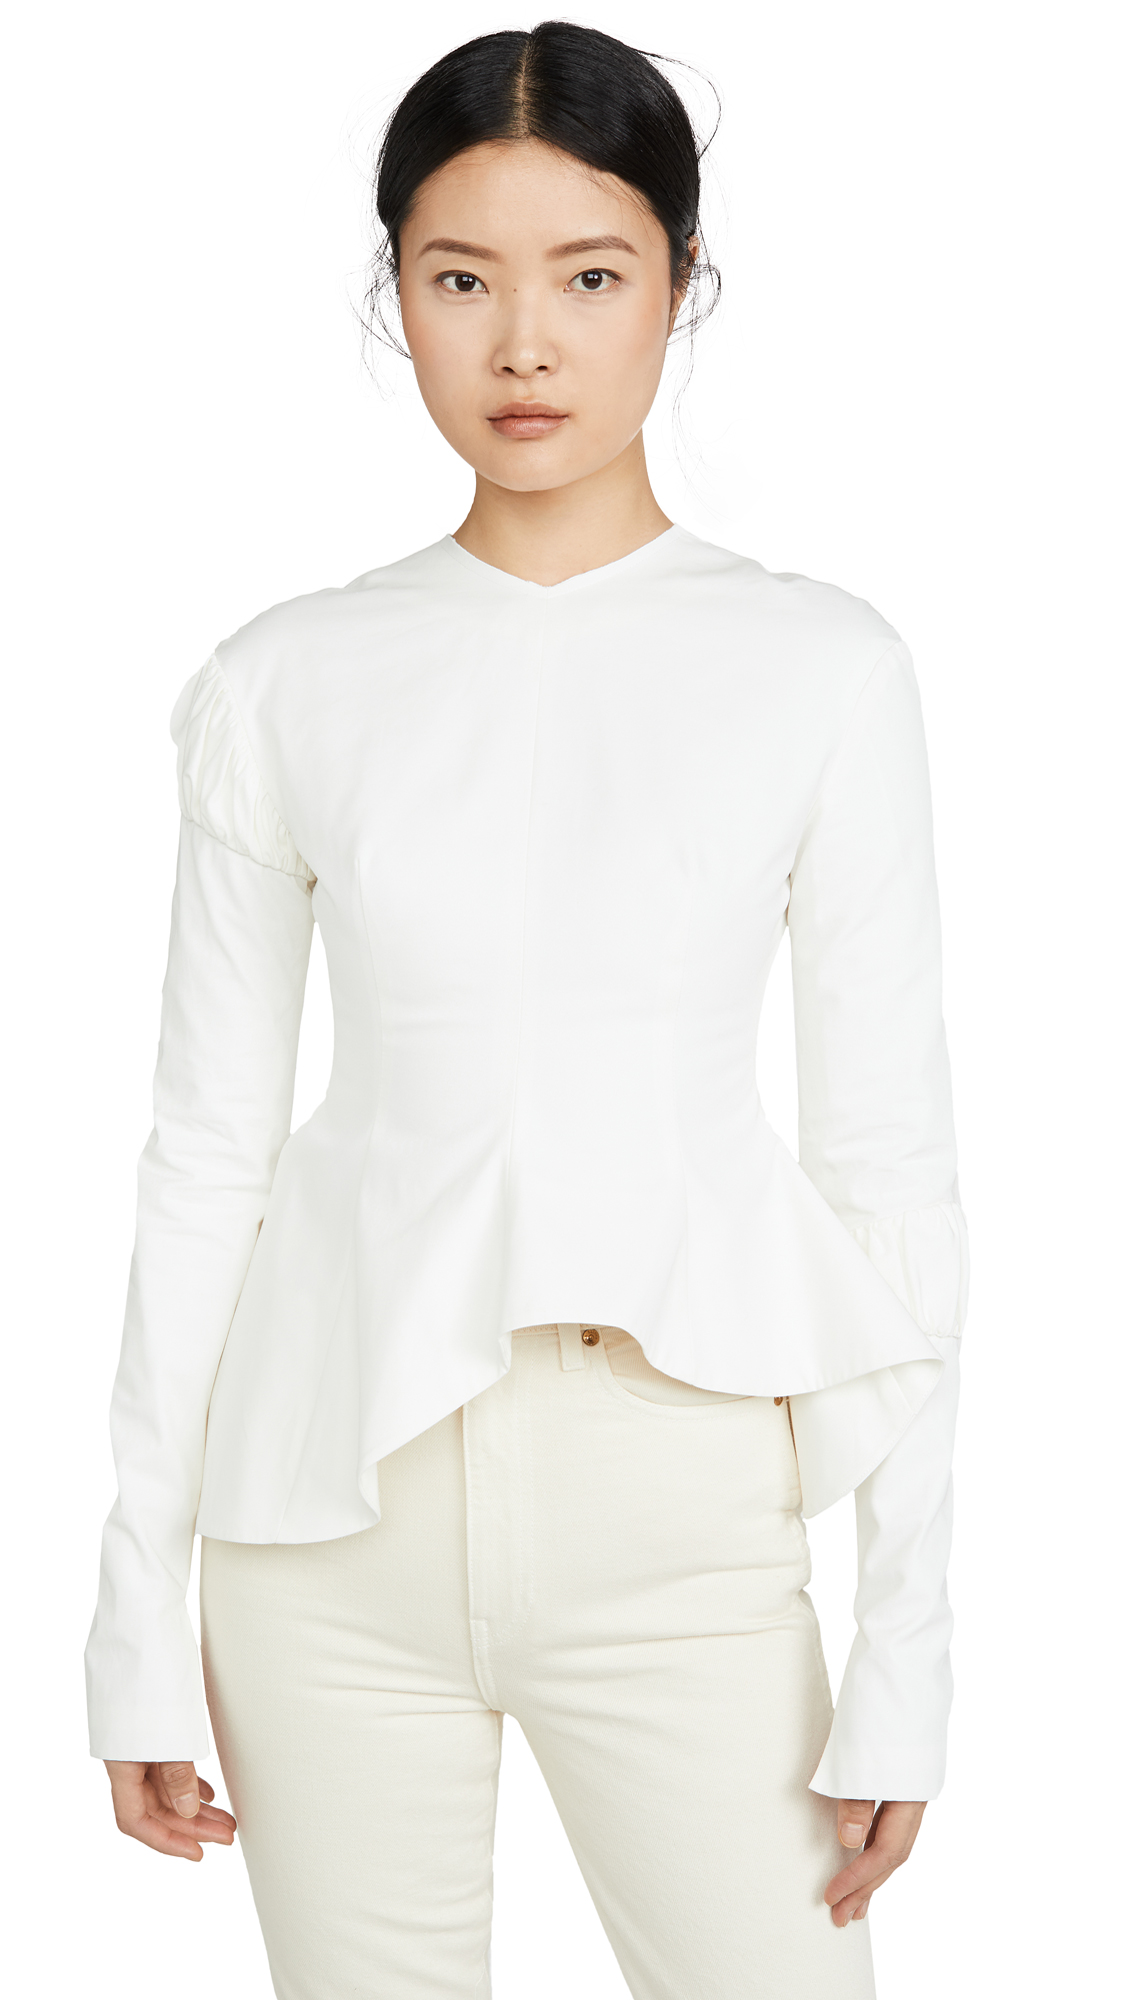 A.W.A.K.E MODE Peplum Top With Gathered Details On The Sleeves - 50% Off Sale